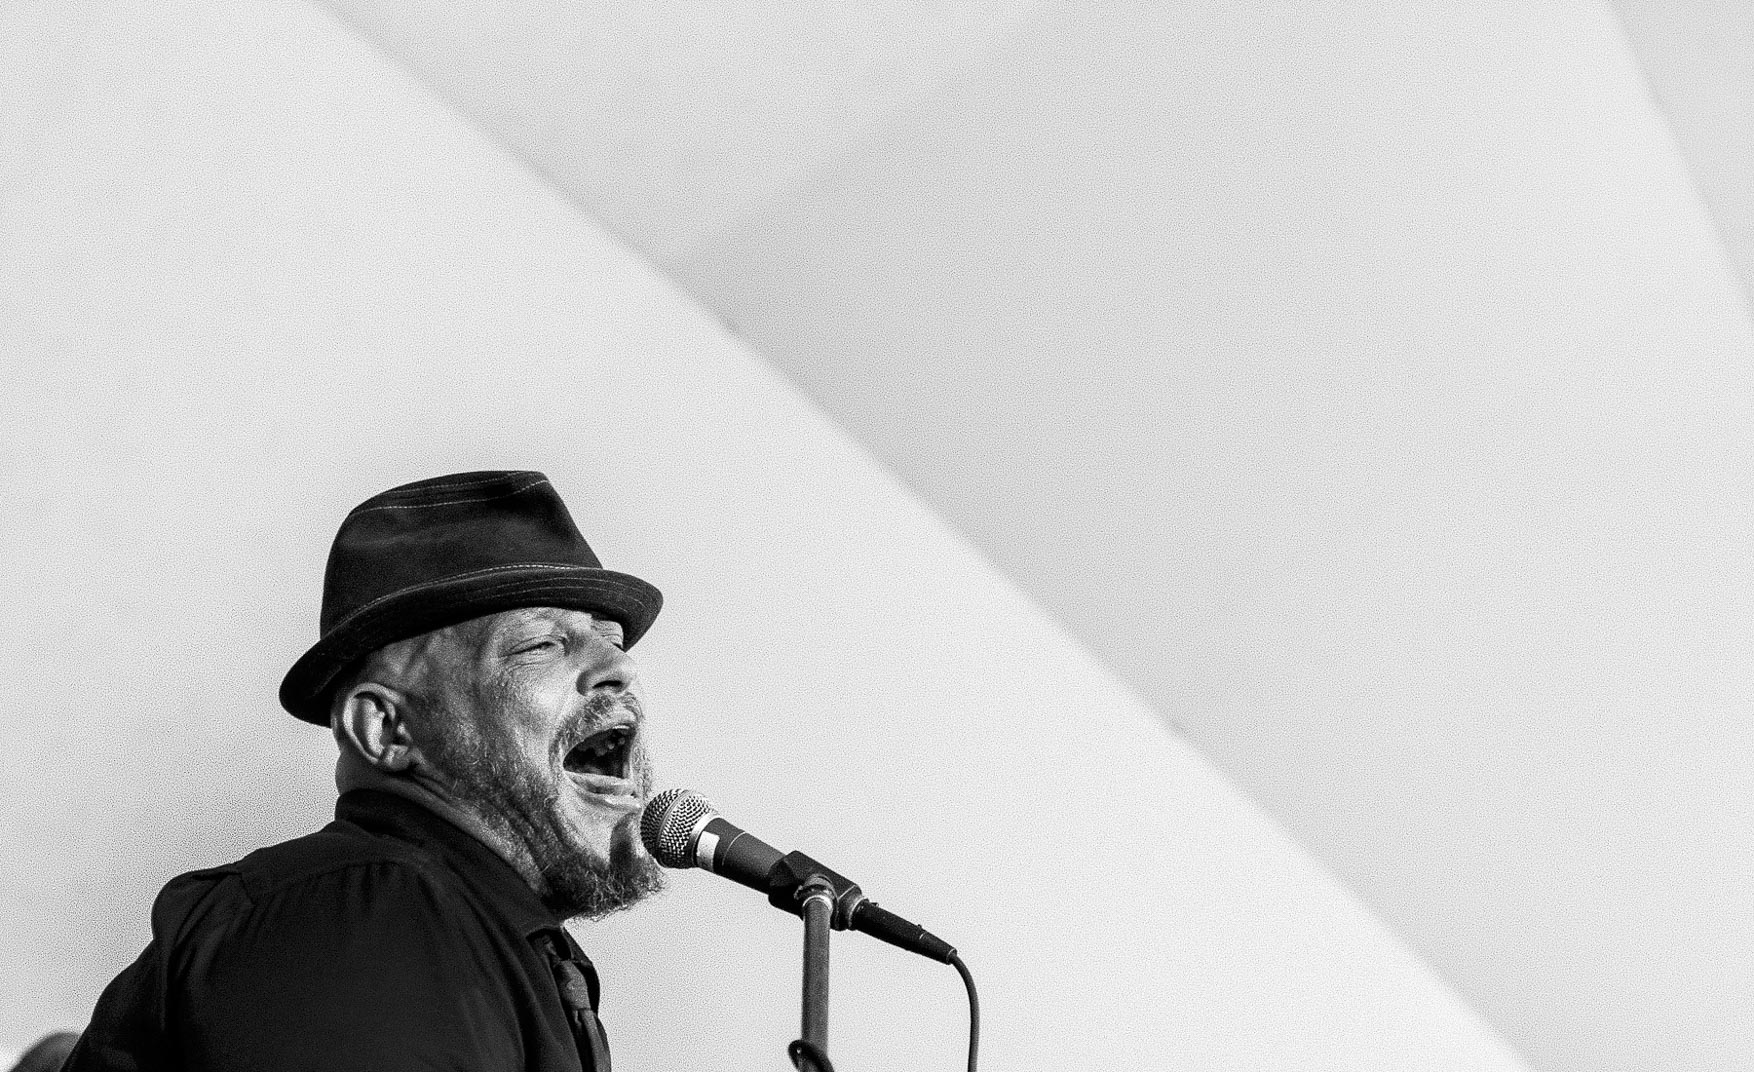 Black and white photograph of man with beard and mustache and black fedora hat singing loudly into microphone against white backdrop